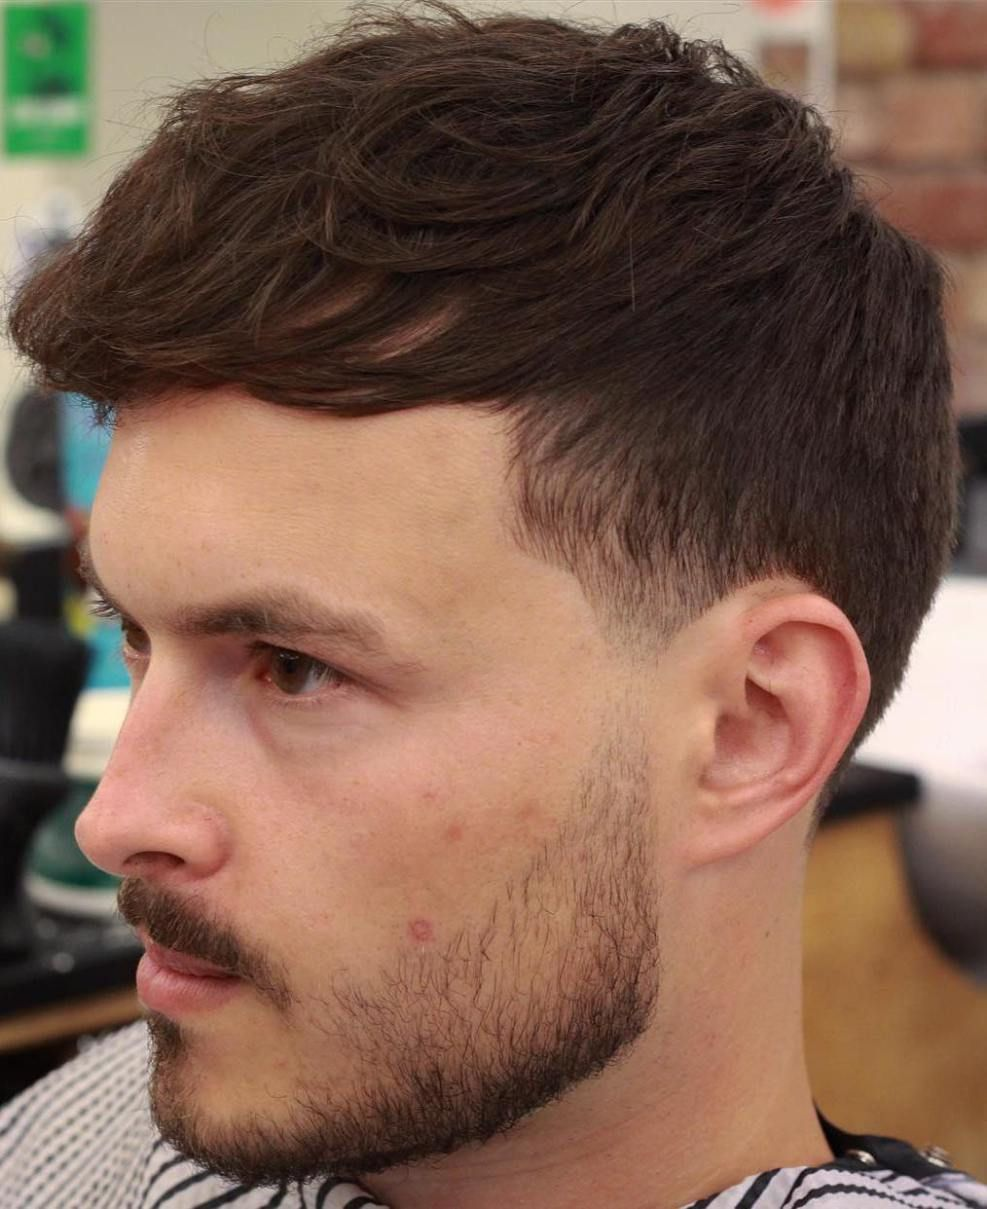 50 Stylish Hairstyles For Men With Thin Hair Haircuts For Receding Hairline Mens Hairstyles Undercut Mens Hairstyles